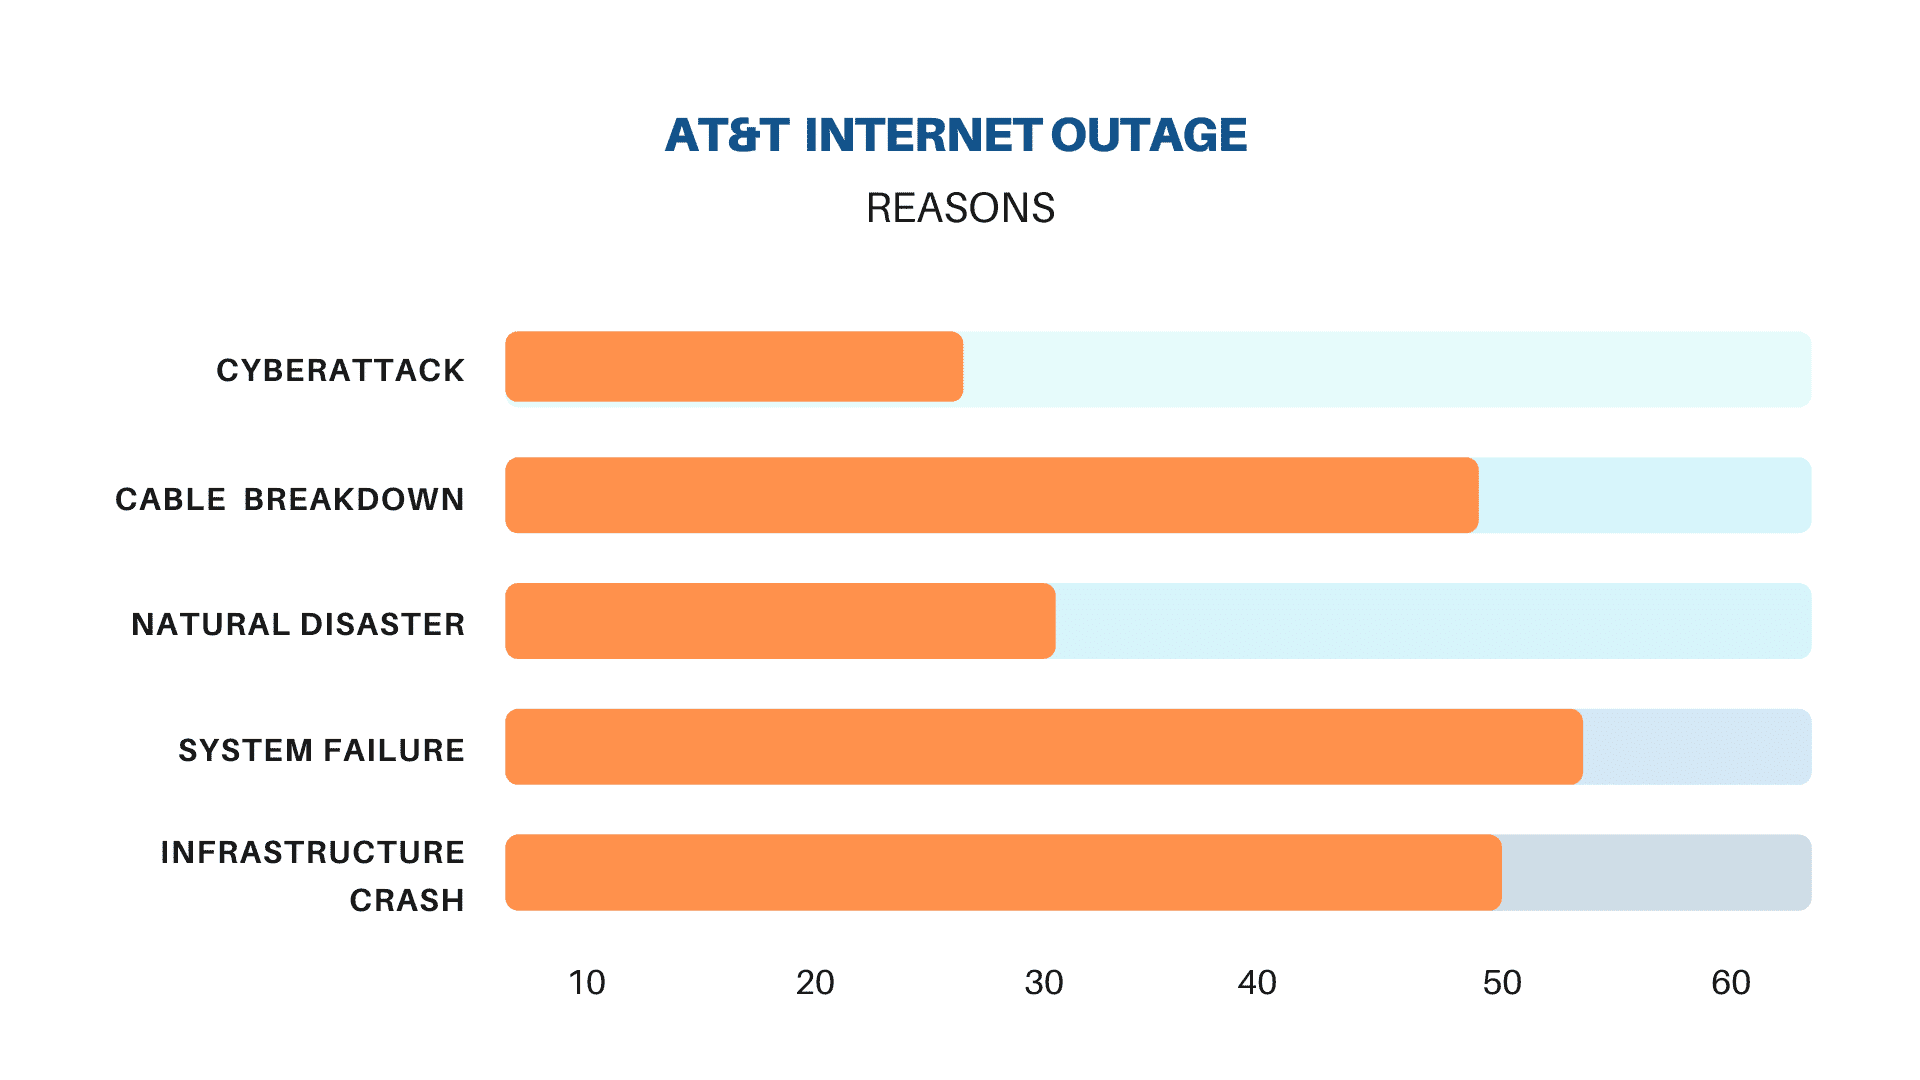 at&t internet outage reasons